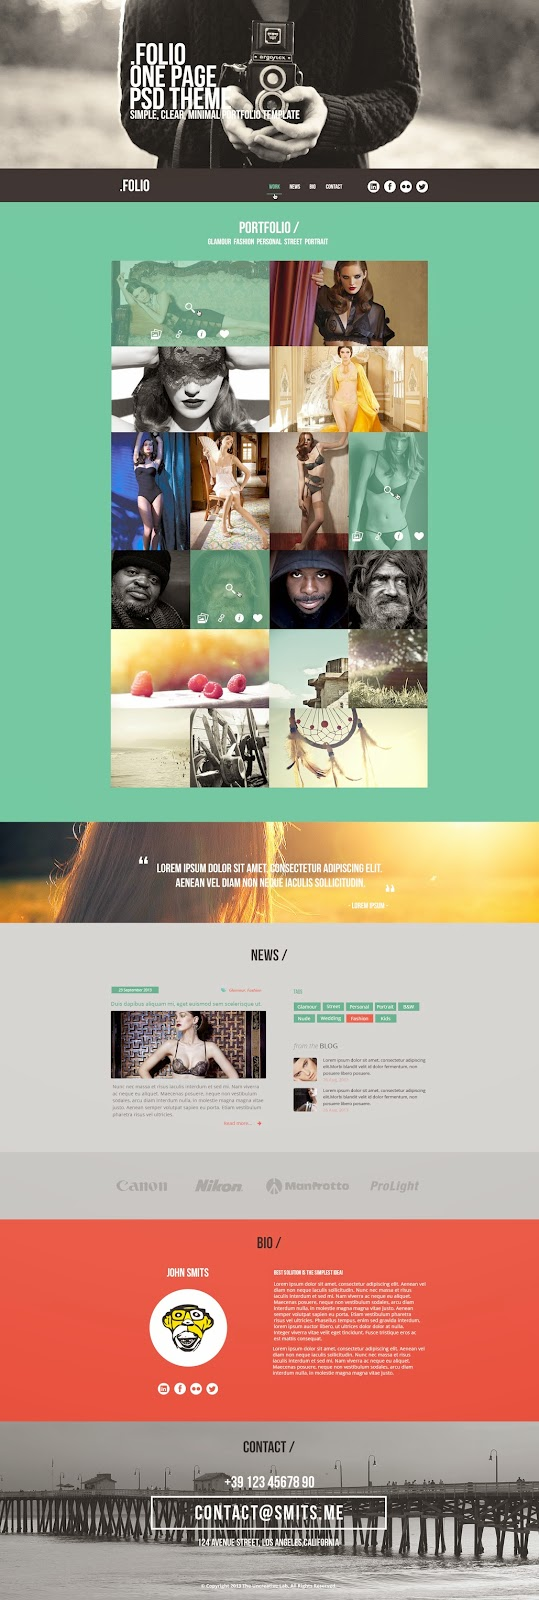 Folio One Page PSD Theme Flat Design Free download